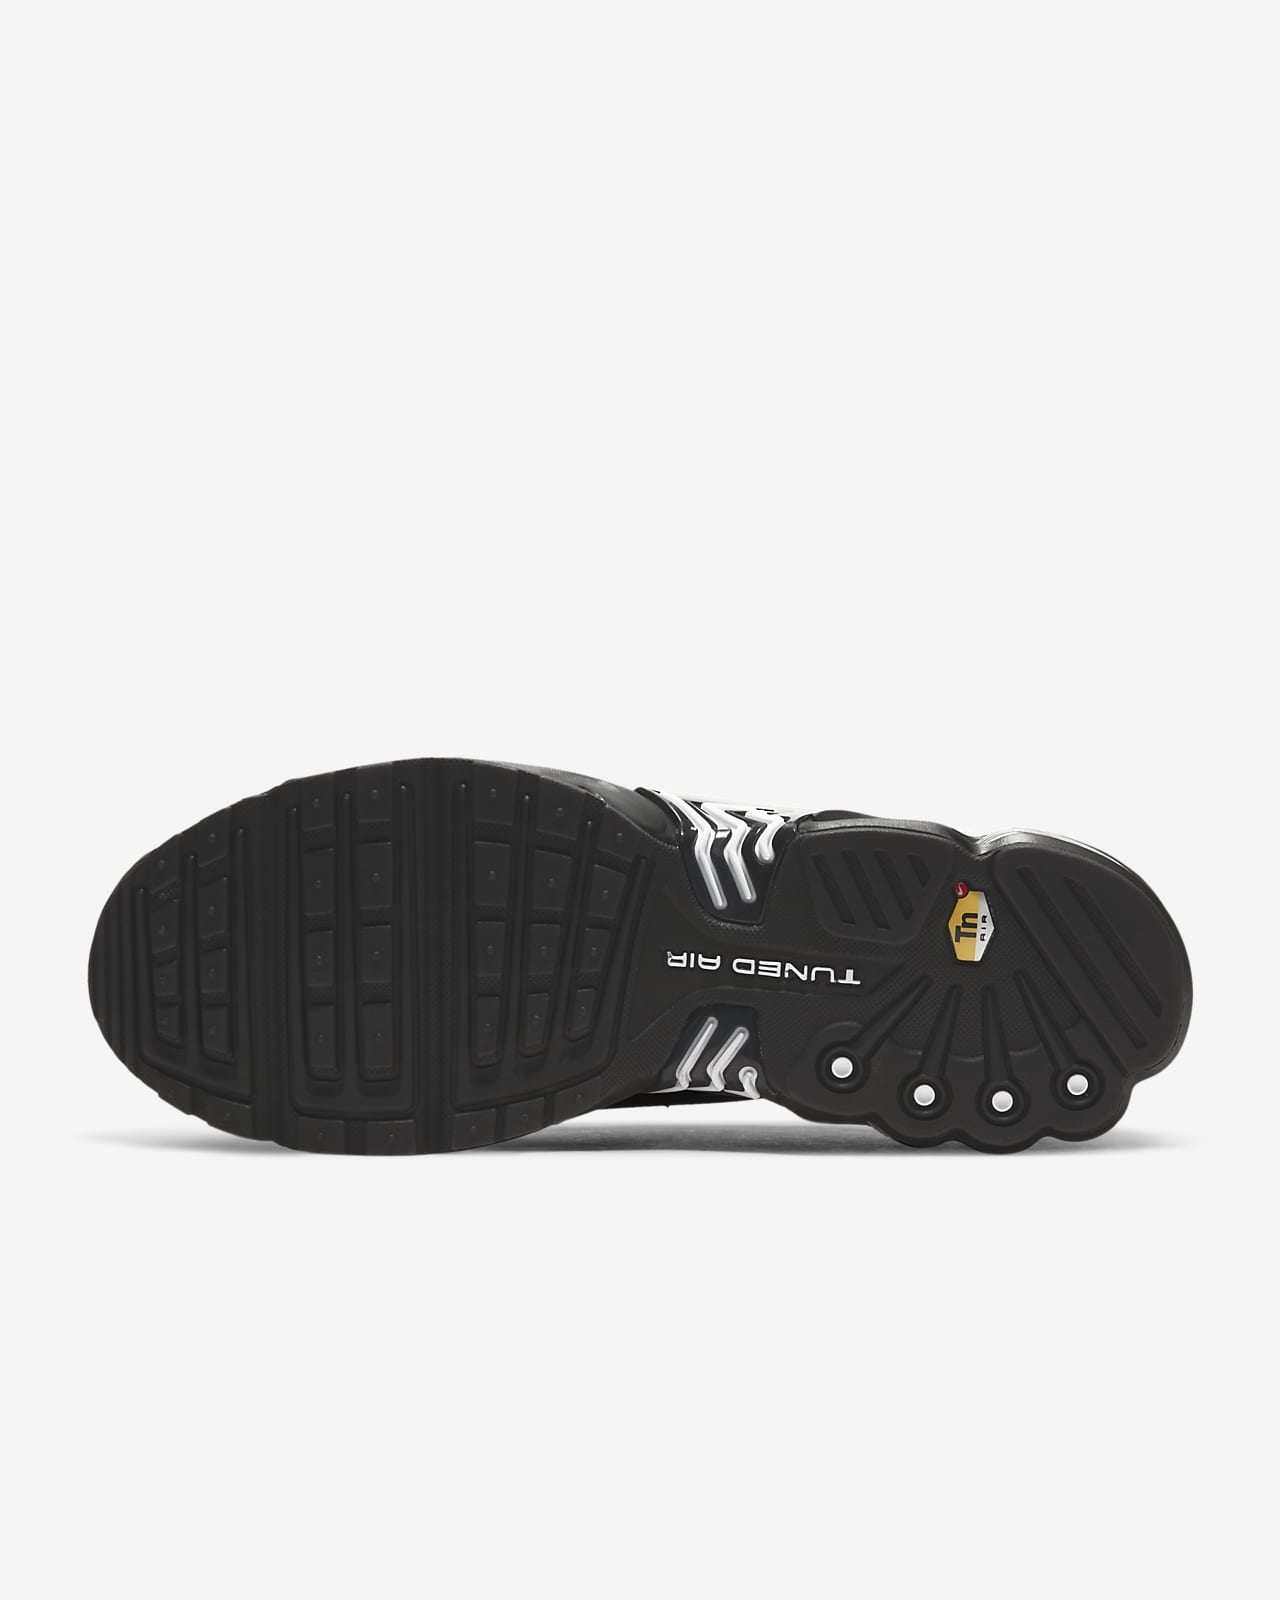 Chaussure Nike Air Max Plus III pour Homme